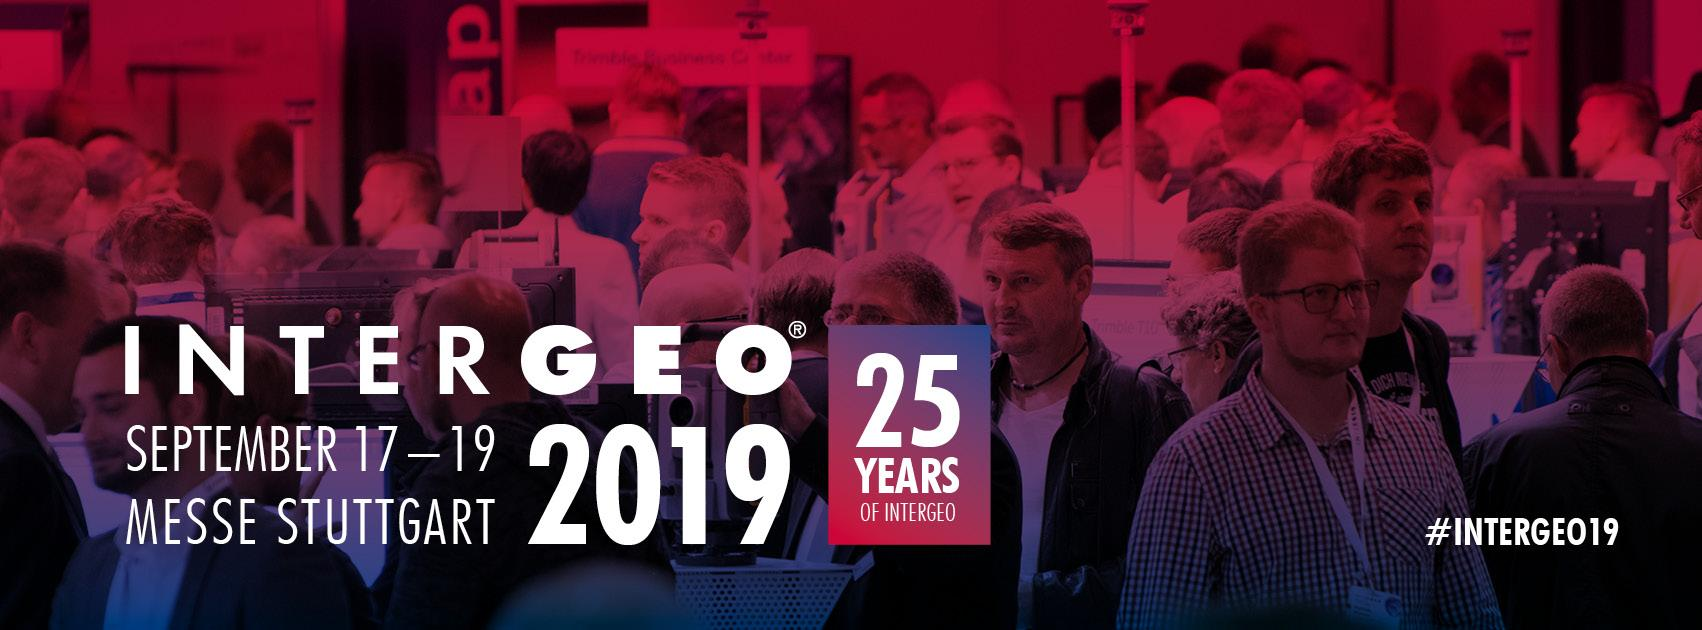 INTERGEO 2019 - Tag 2